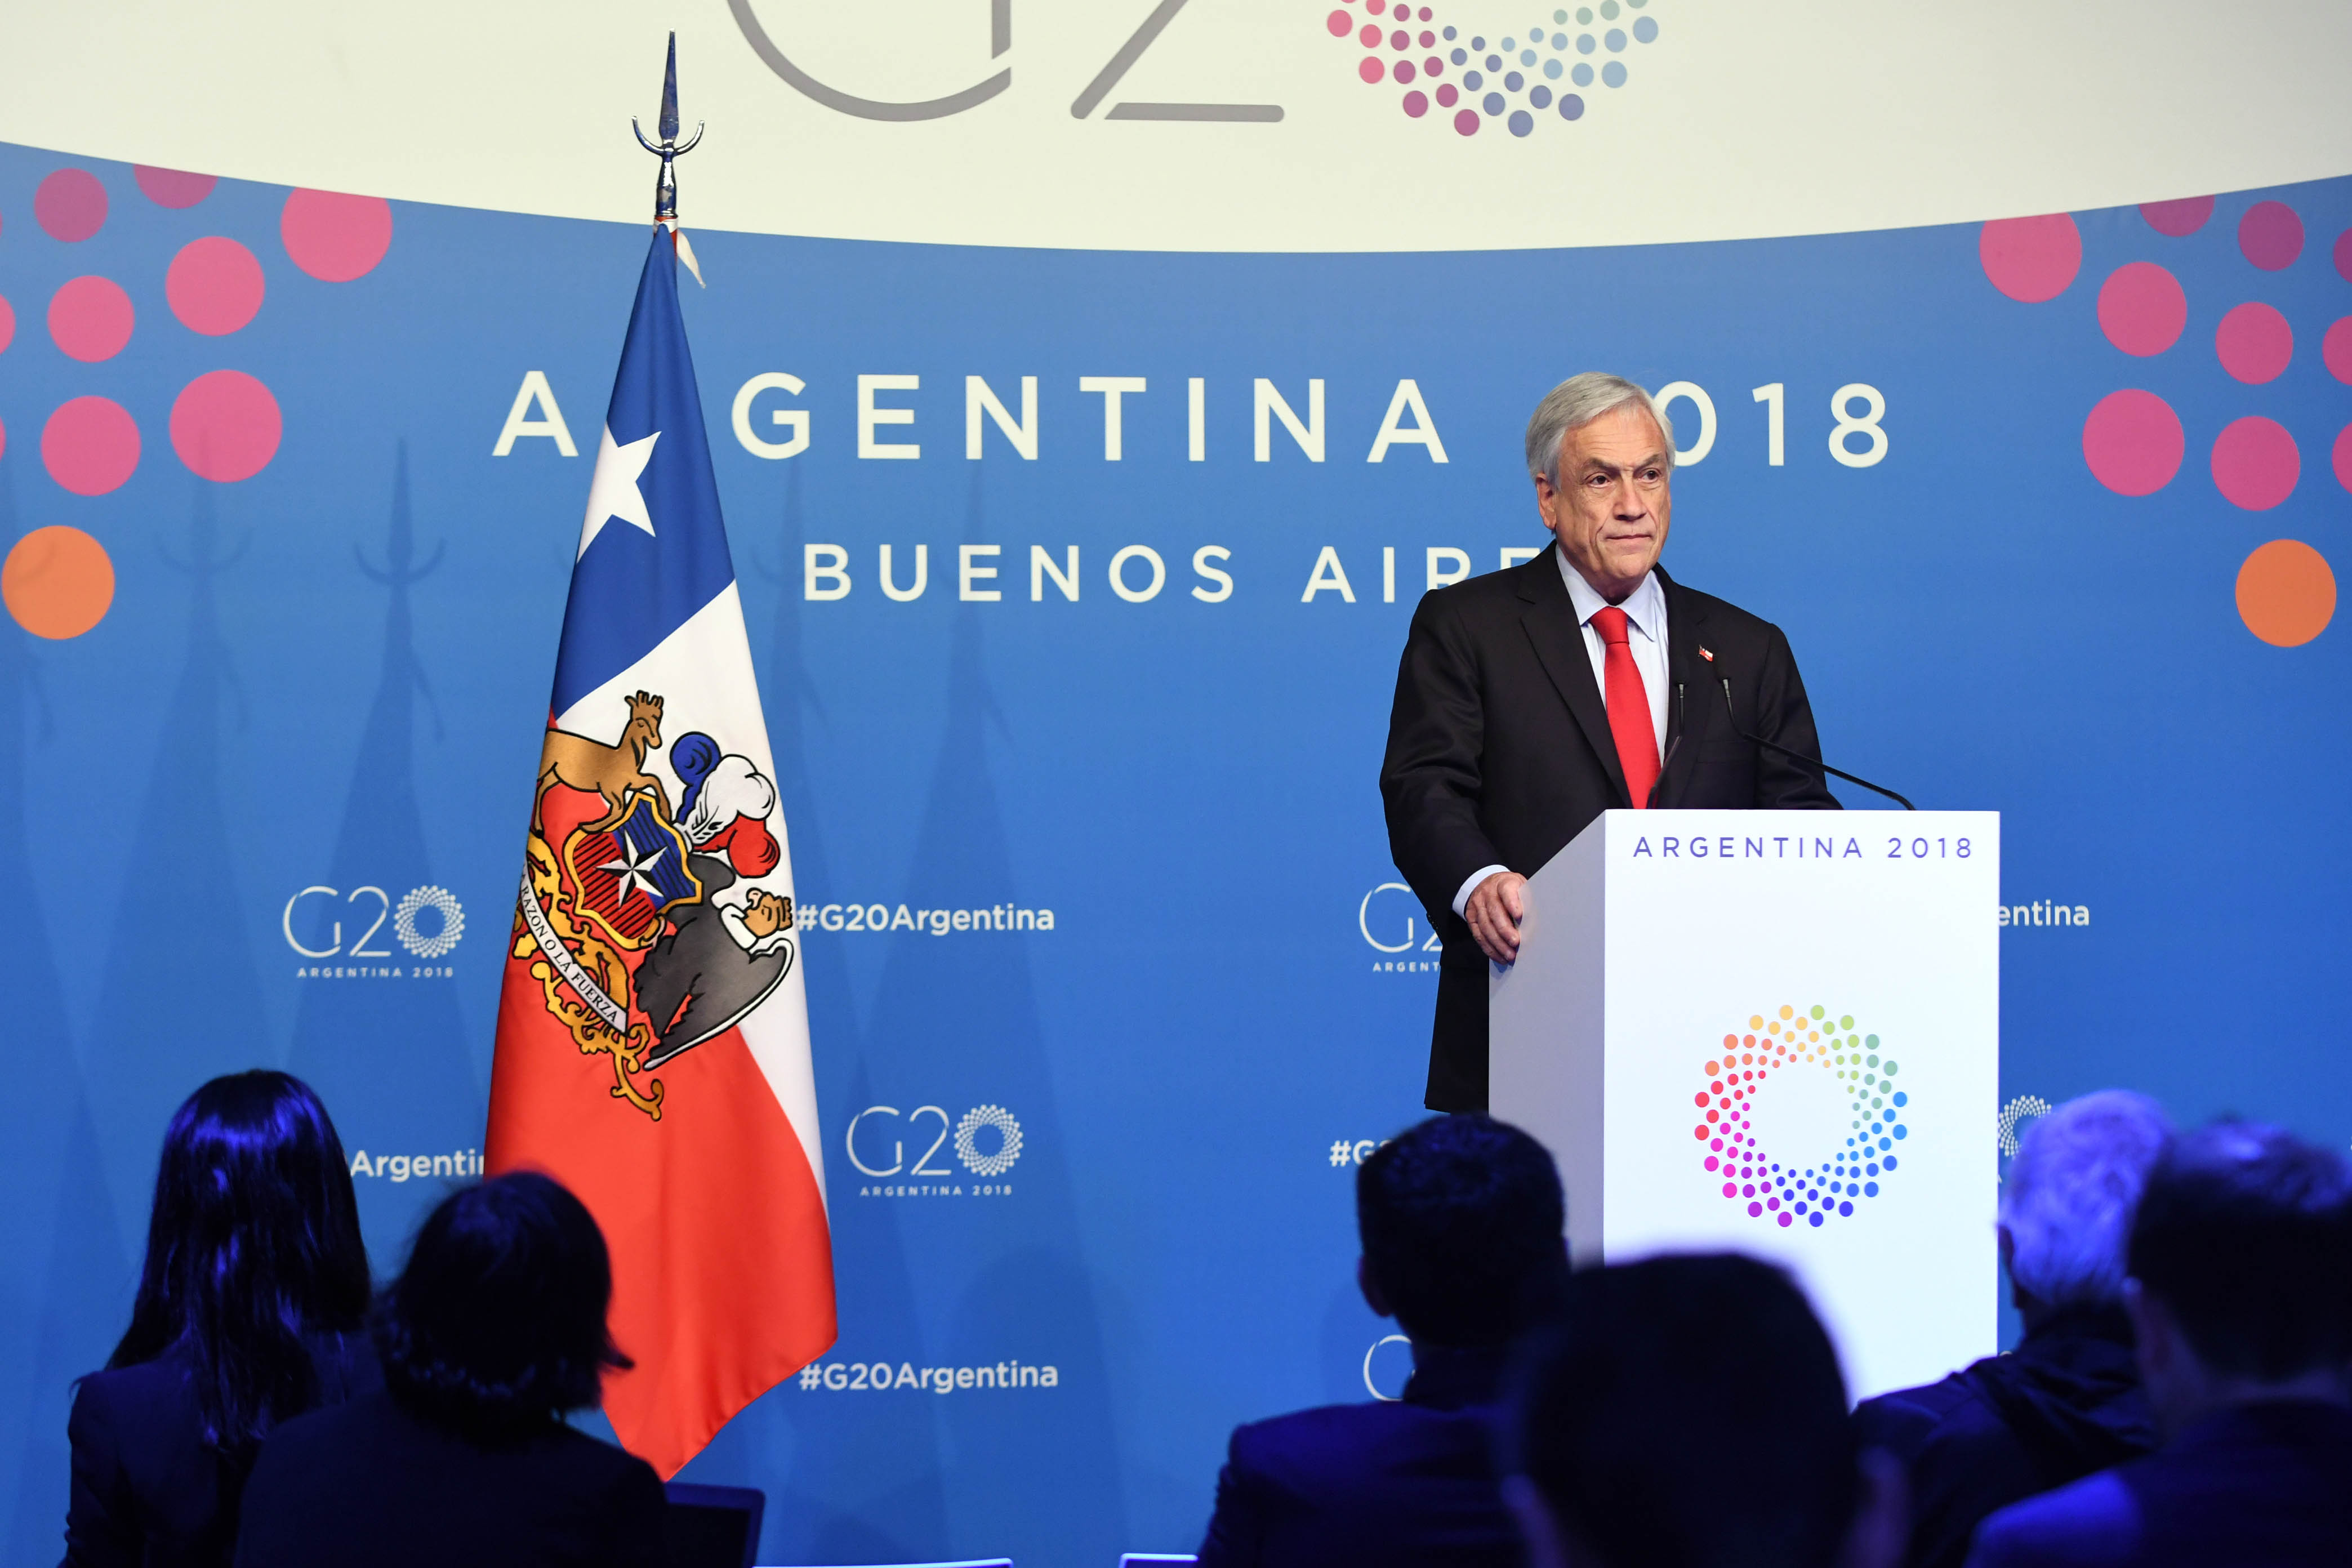 President Sebastián Piñera of Chile (photo credit: G20 Argentina/flickr)